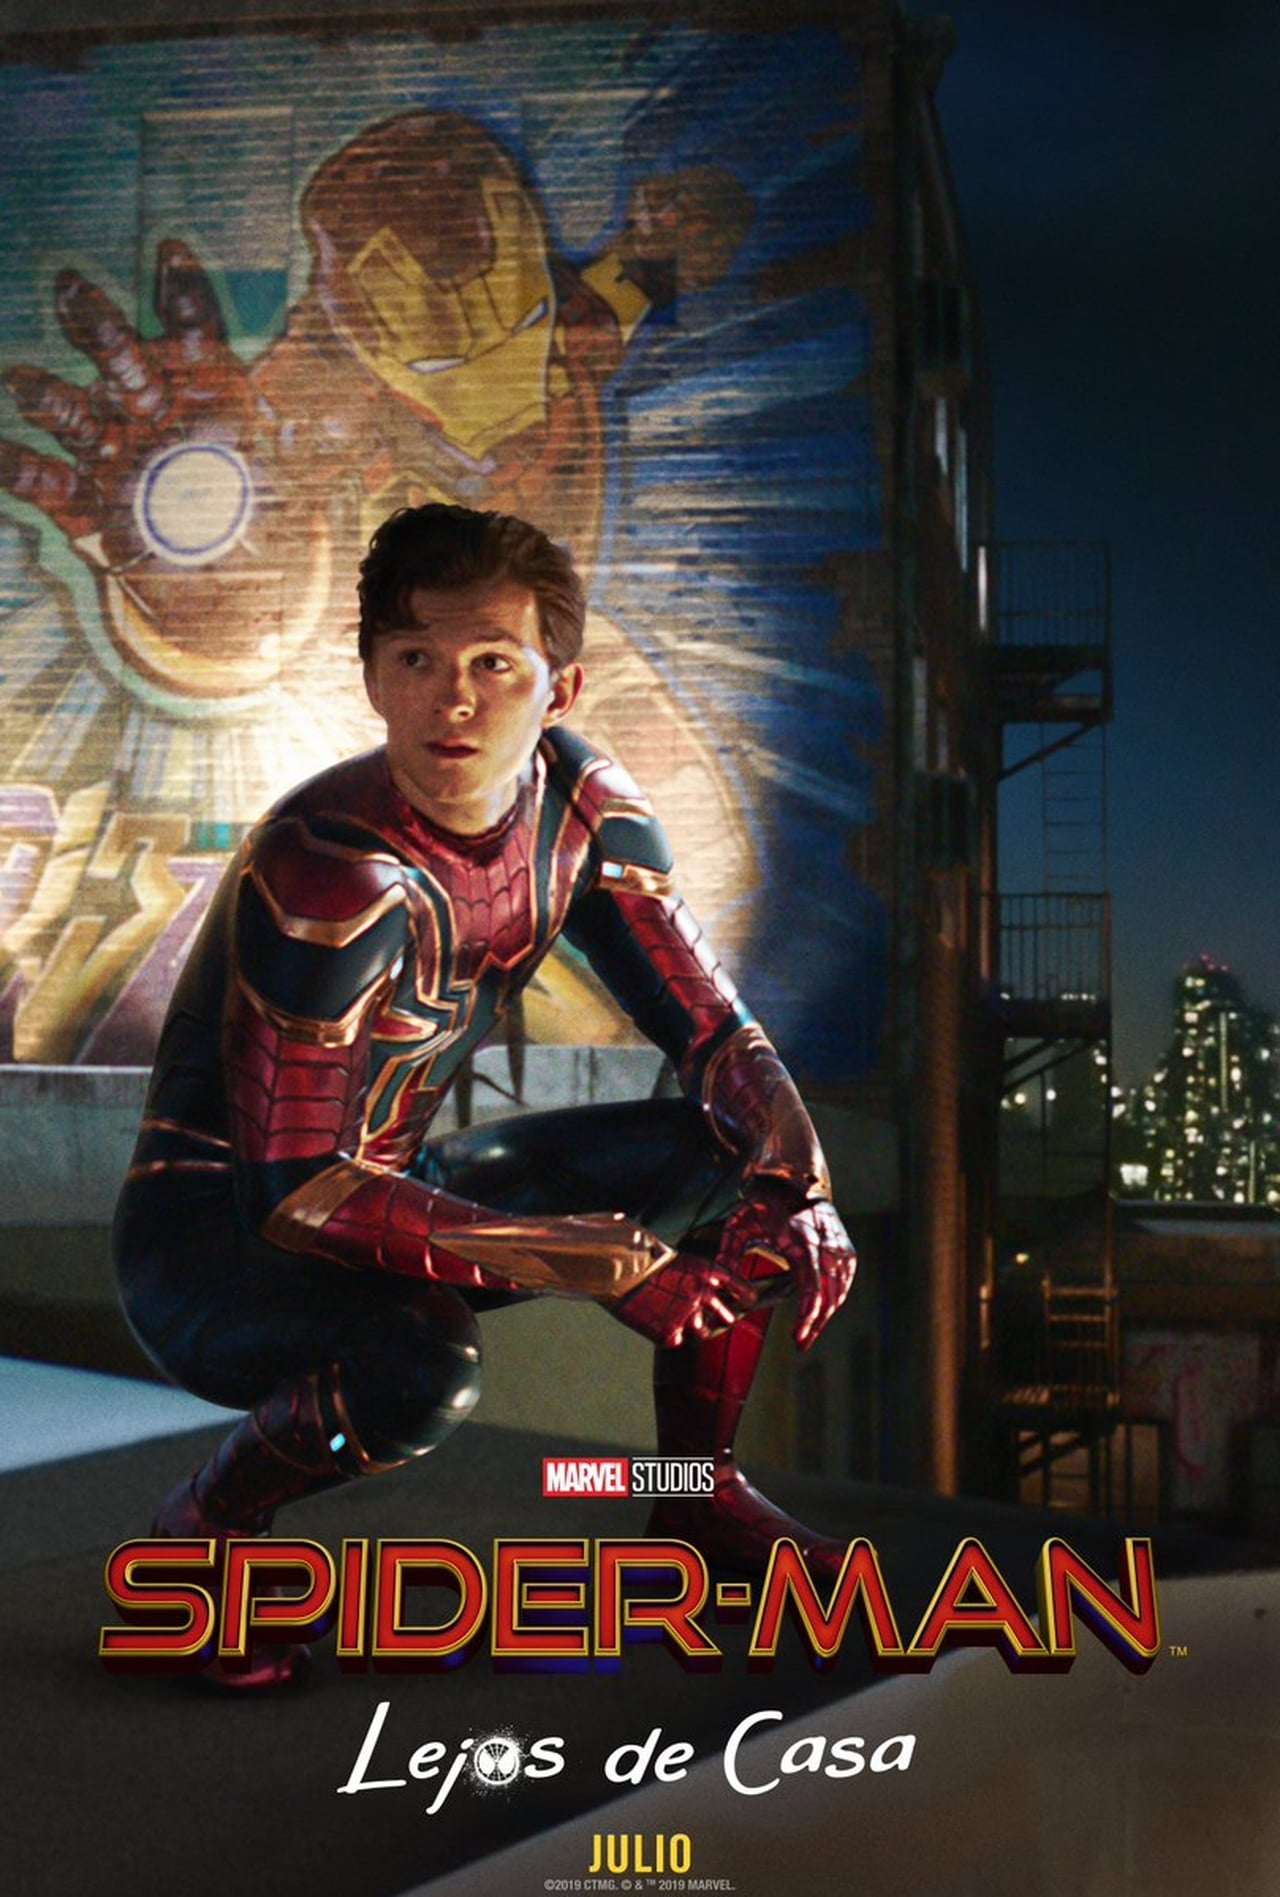 Far From Home Google Drive : google, drive, Spider, ,2019, Google, Drive, Spider-man-2019-google-docs, -hd.over-blog.com